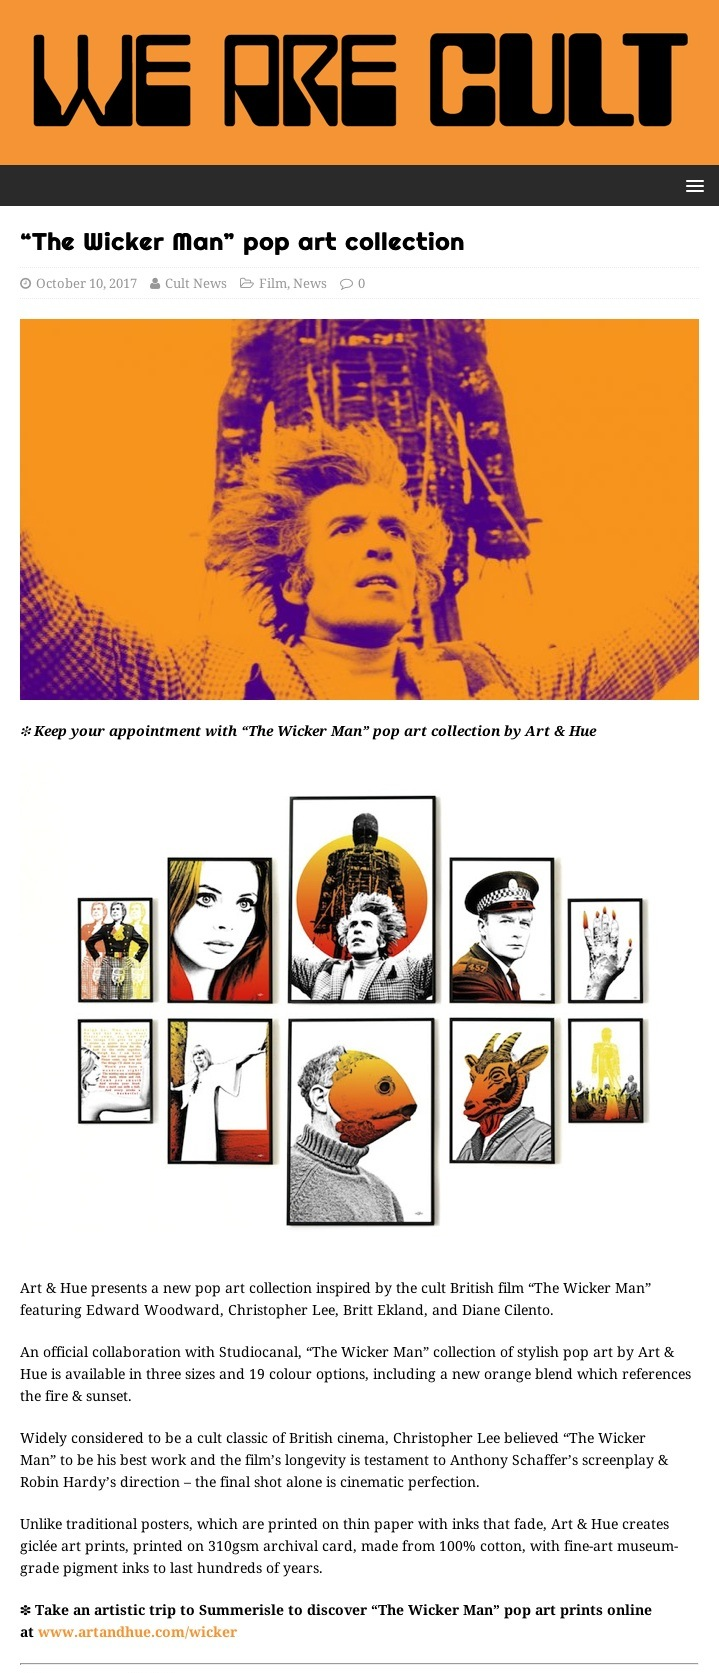 The Wicker Man pop art collection – We Are Cult